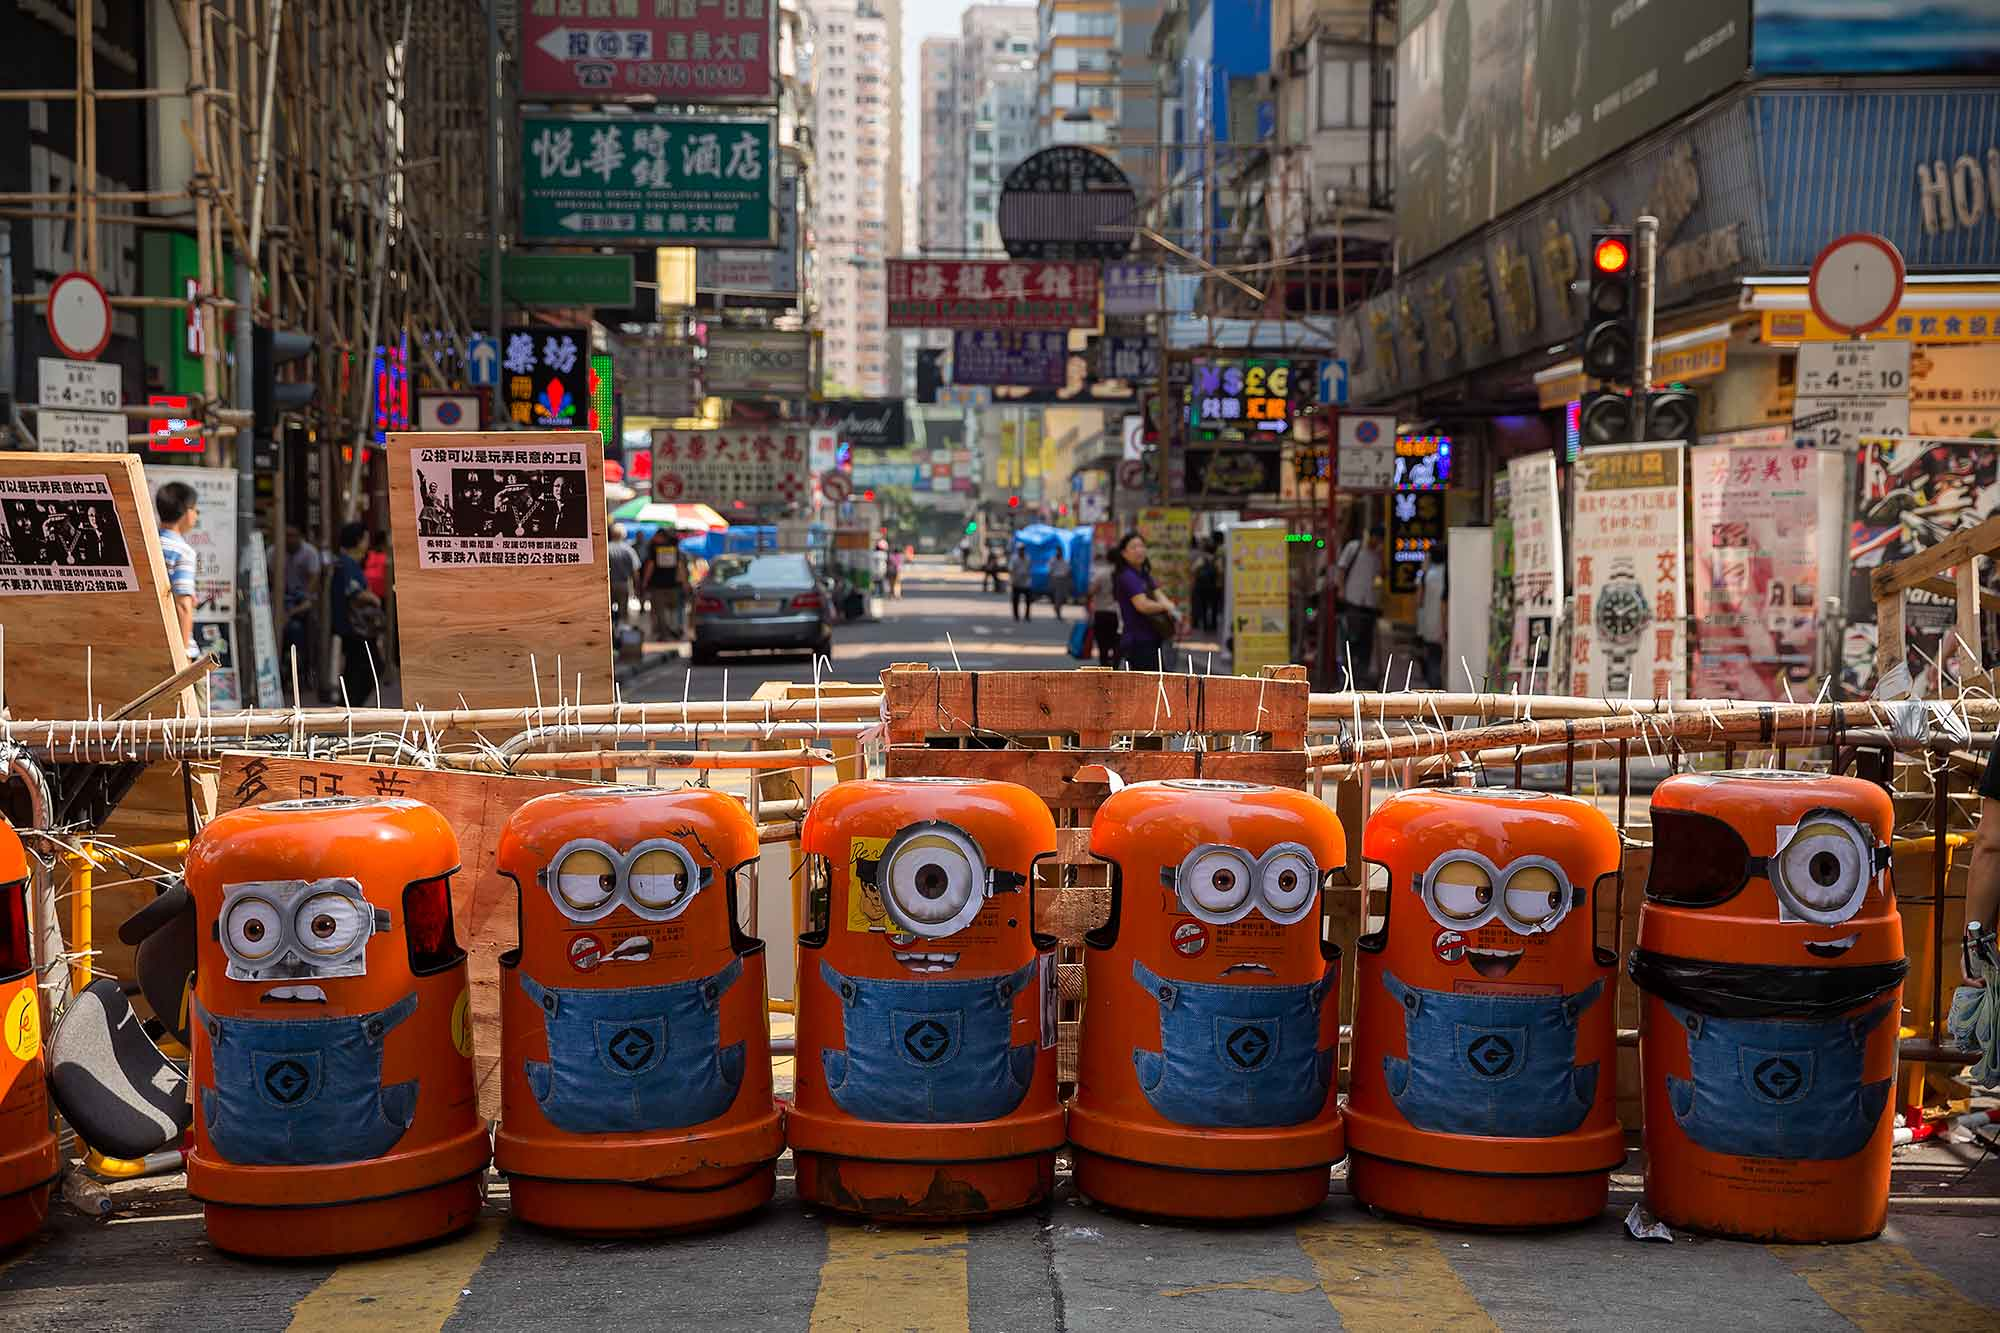 Hong Kong 2014 Travel Amp Documentary Photography By Ulli